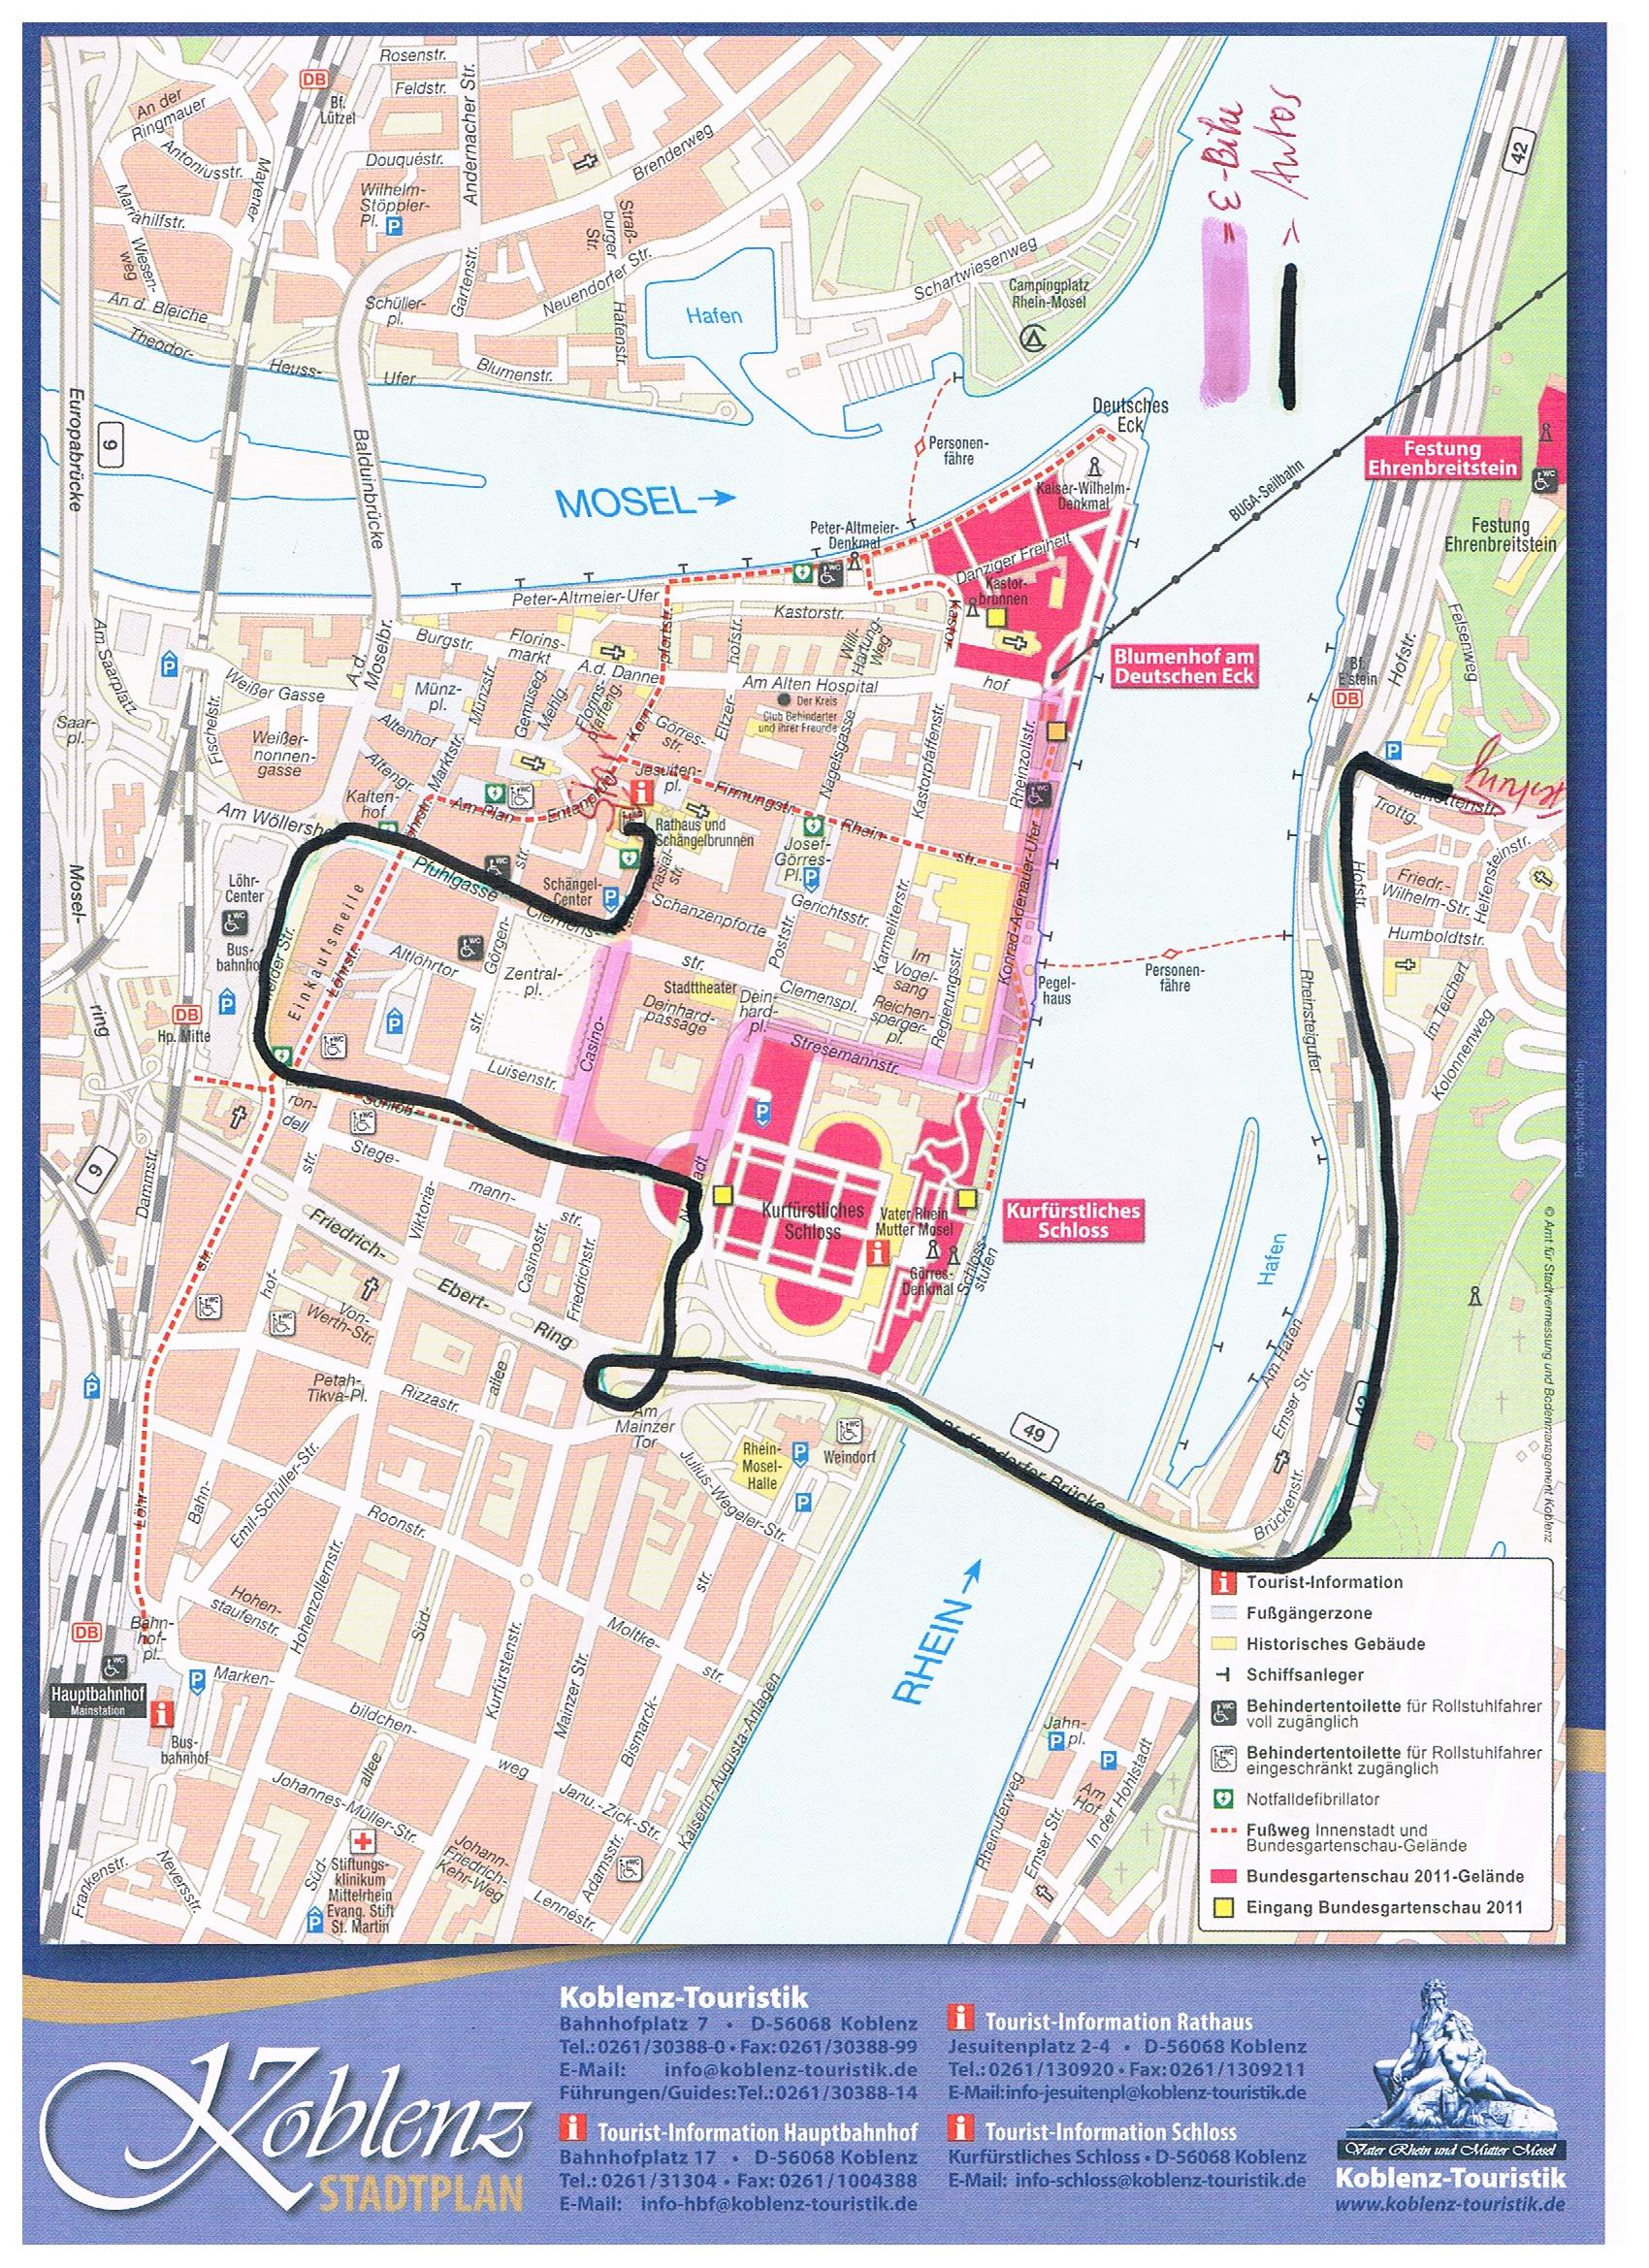 WAVE2014 - Route in Koblenz